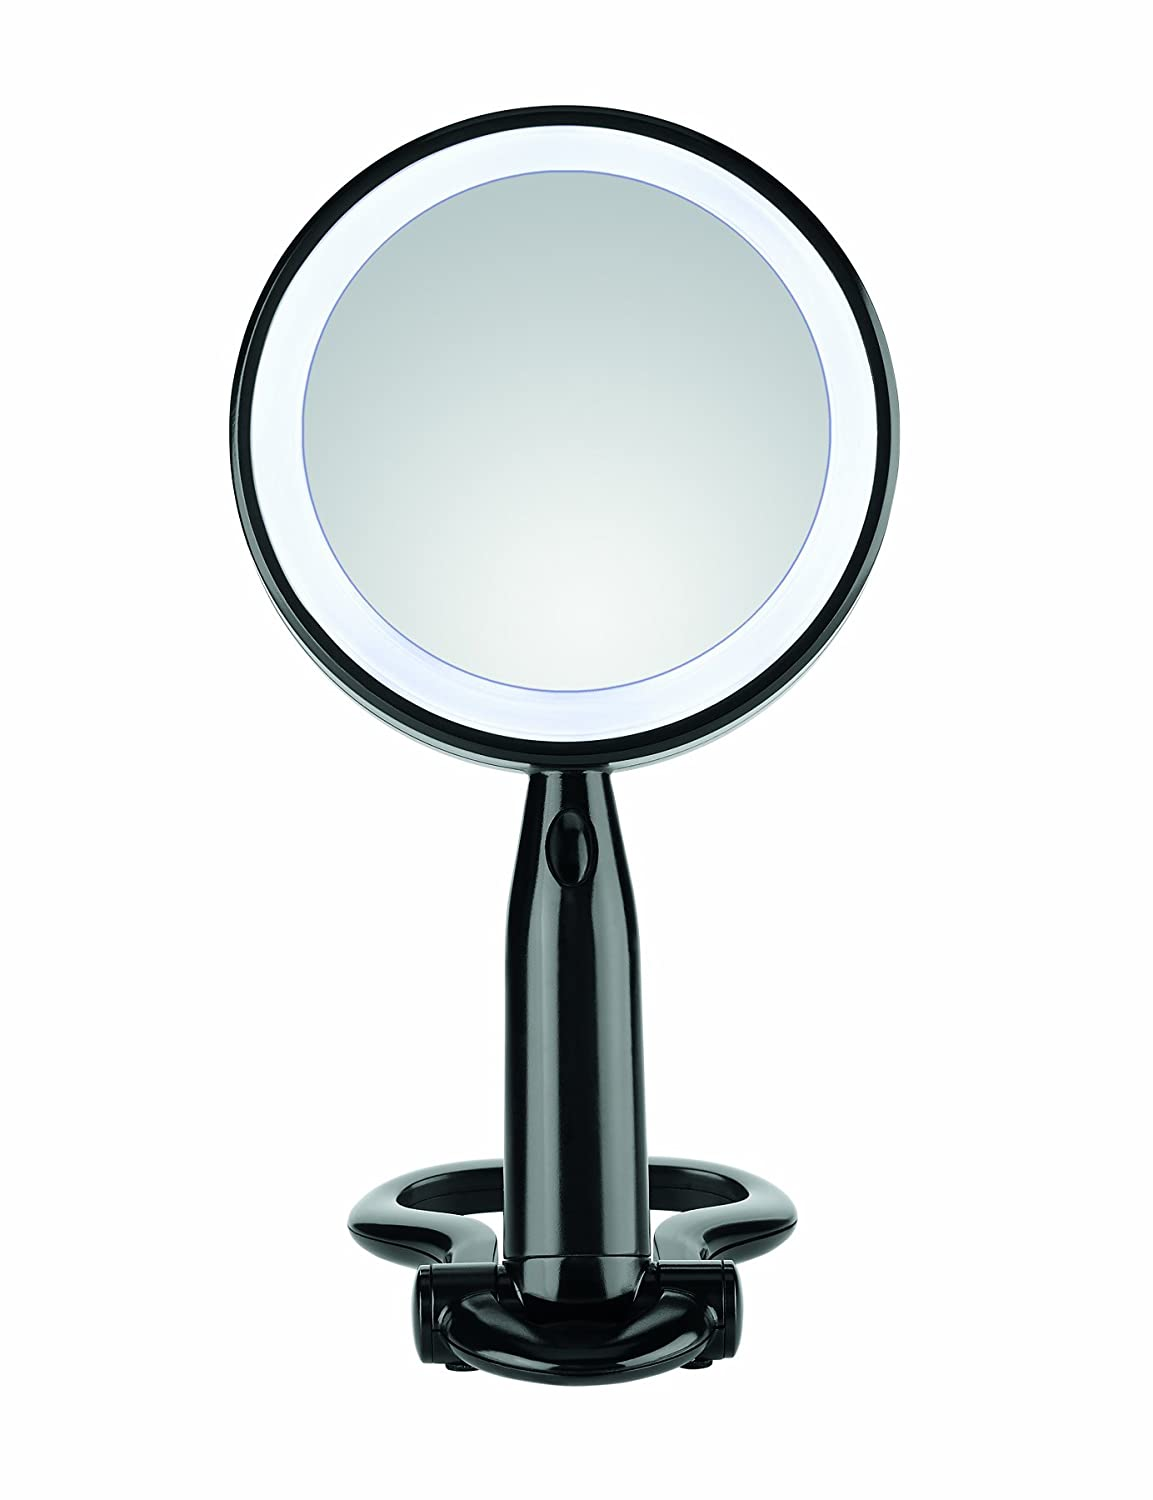 promotion mirror magnifying lighted makeup led travel sided light lighting double promotions with